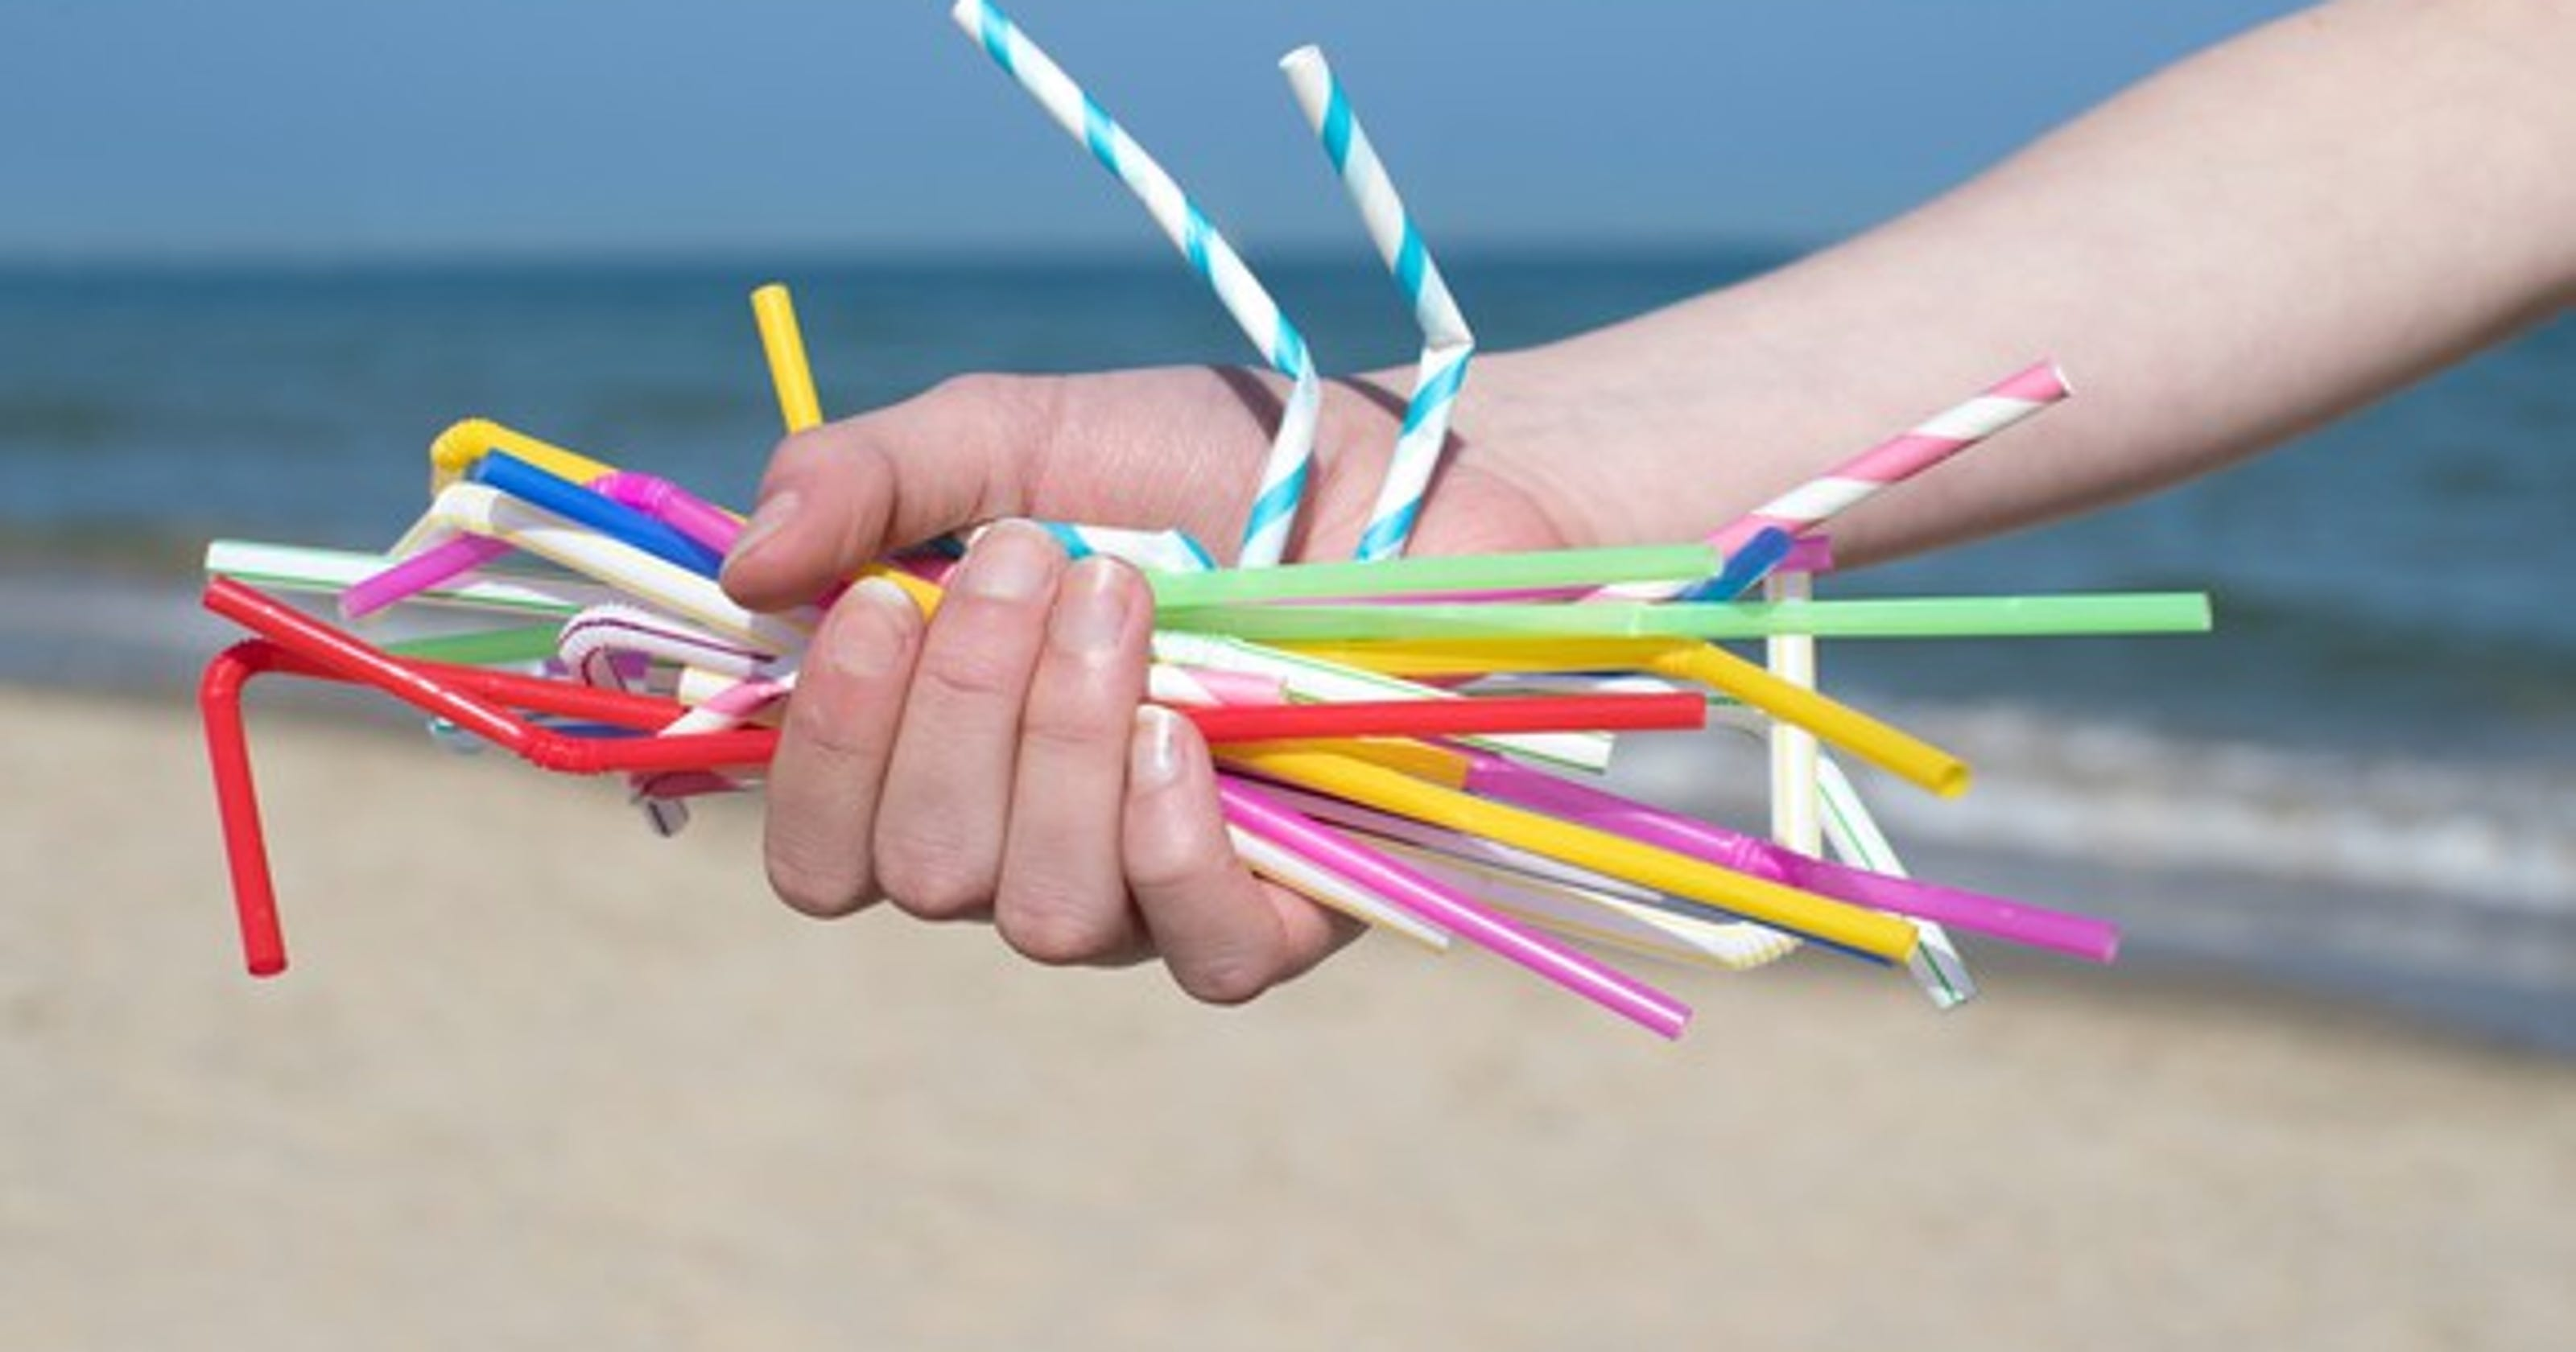 Bans On Plastic Straws Just Another Eco Fad That Will Soon Fade Wiring Nail Board